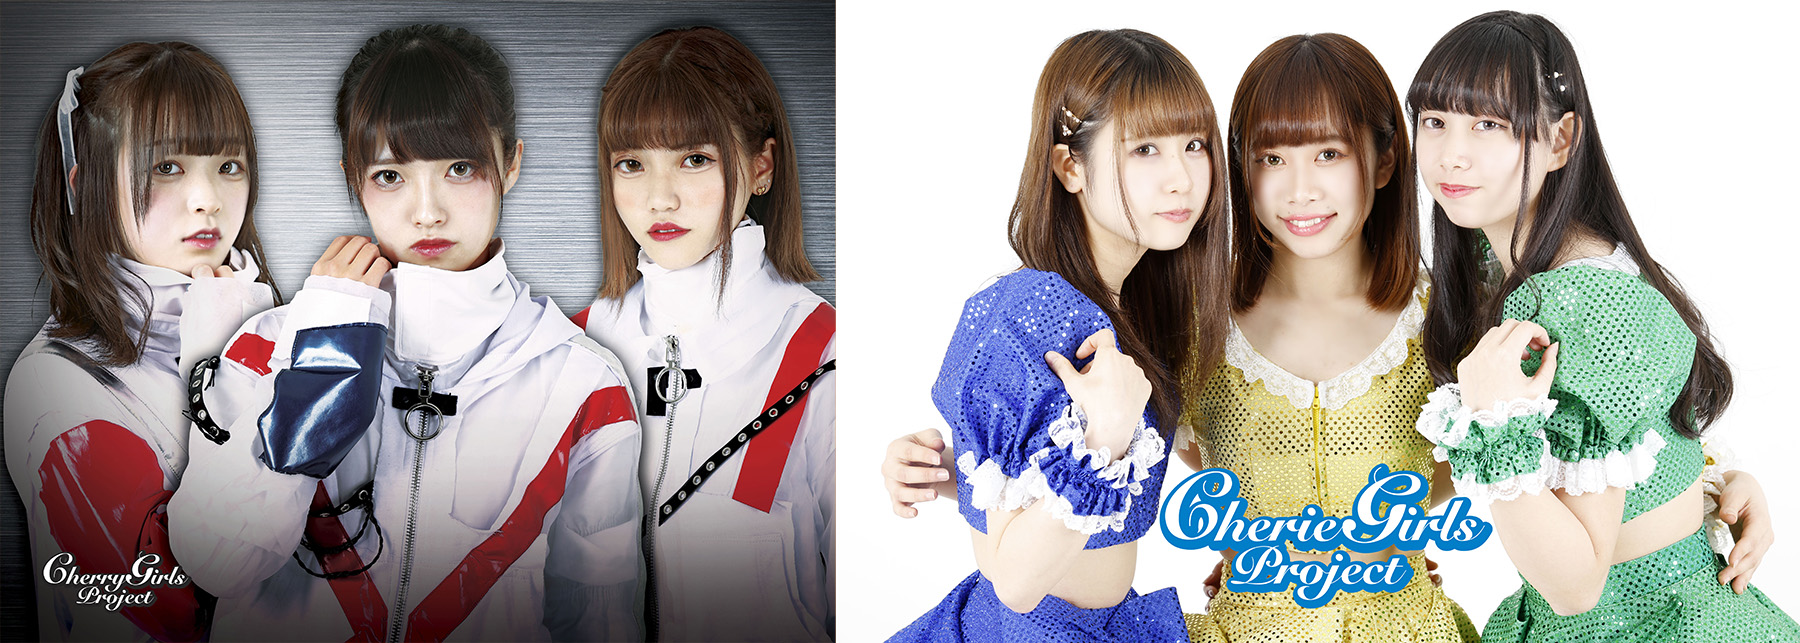 "Girls Project公演""prelude""</br>CHERRY GIRLS PROJECT vs CHERIE GIRLS PROJECT 2マンライブ対決!〈公演中止/振替公演あり〉"